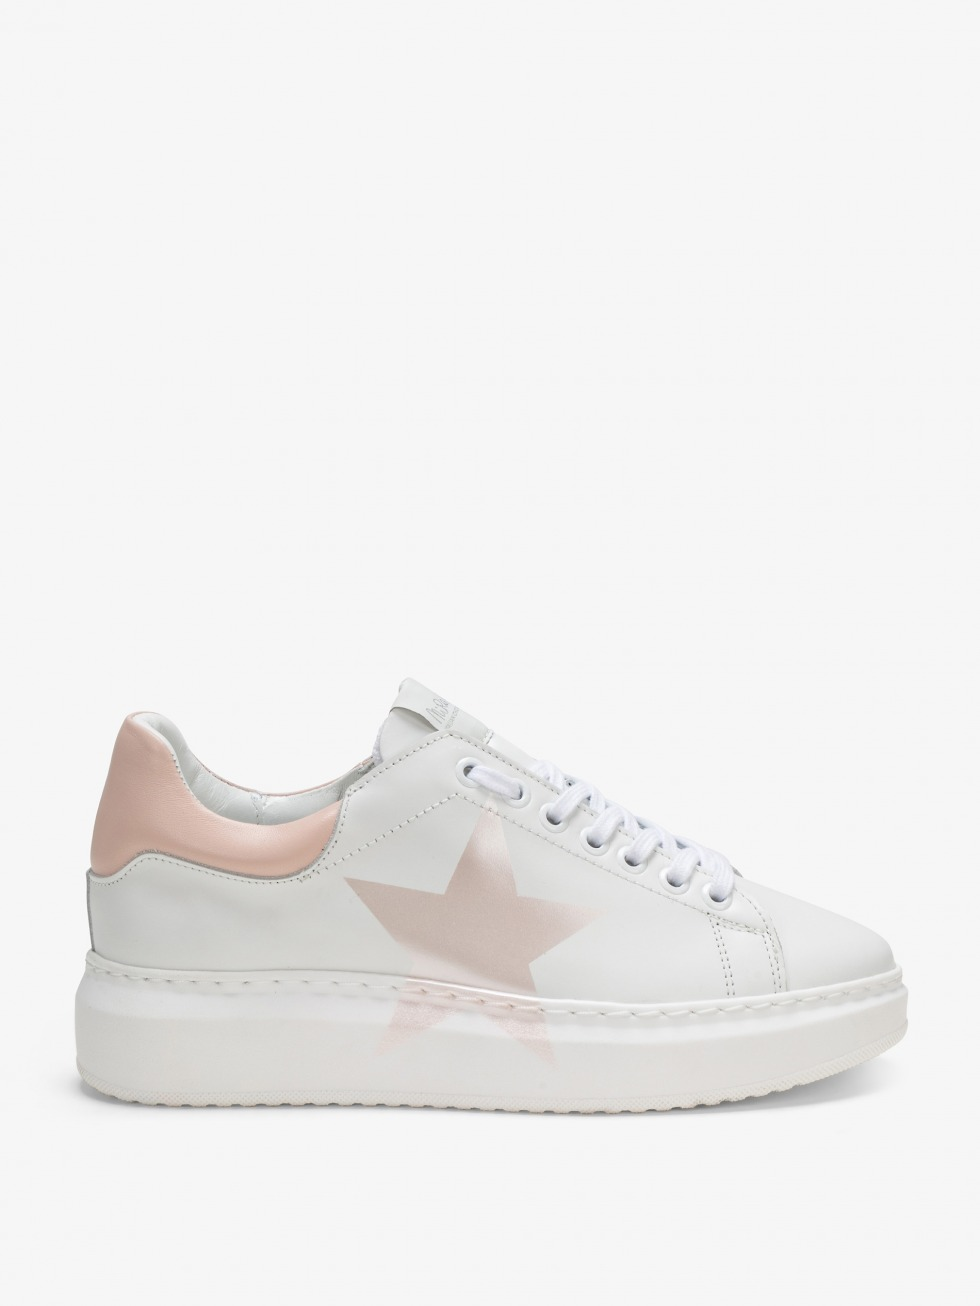 sneakers-con-plateau-bianche-angel-seventies-peonia-stella